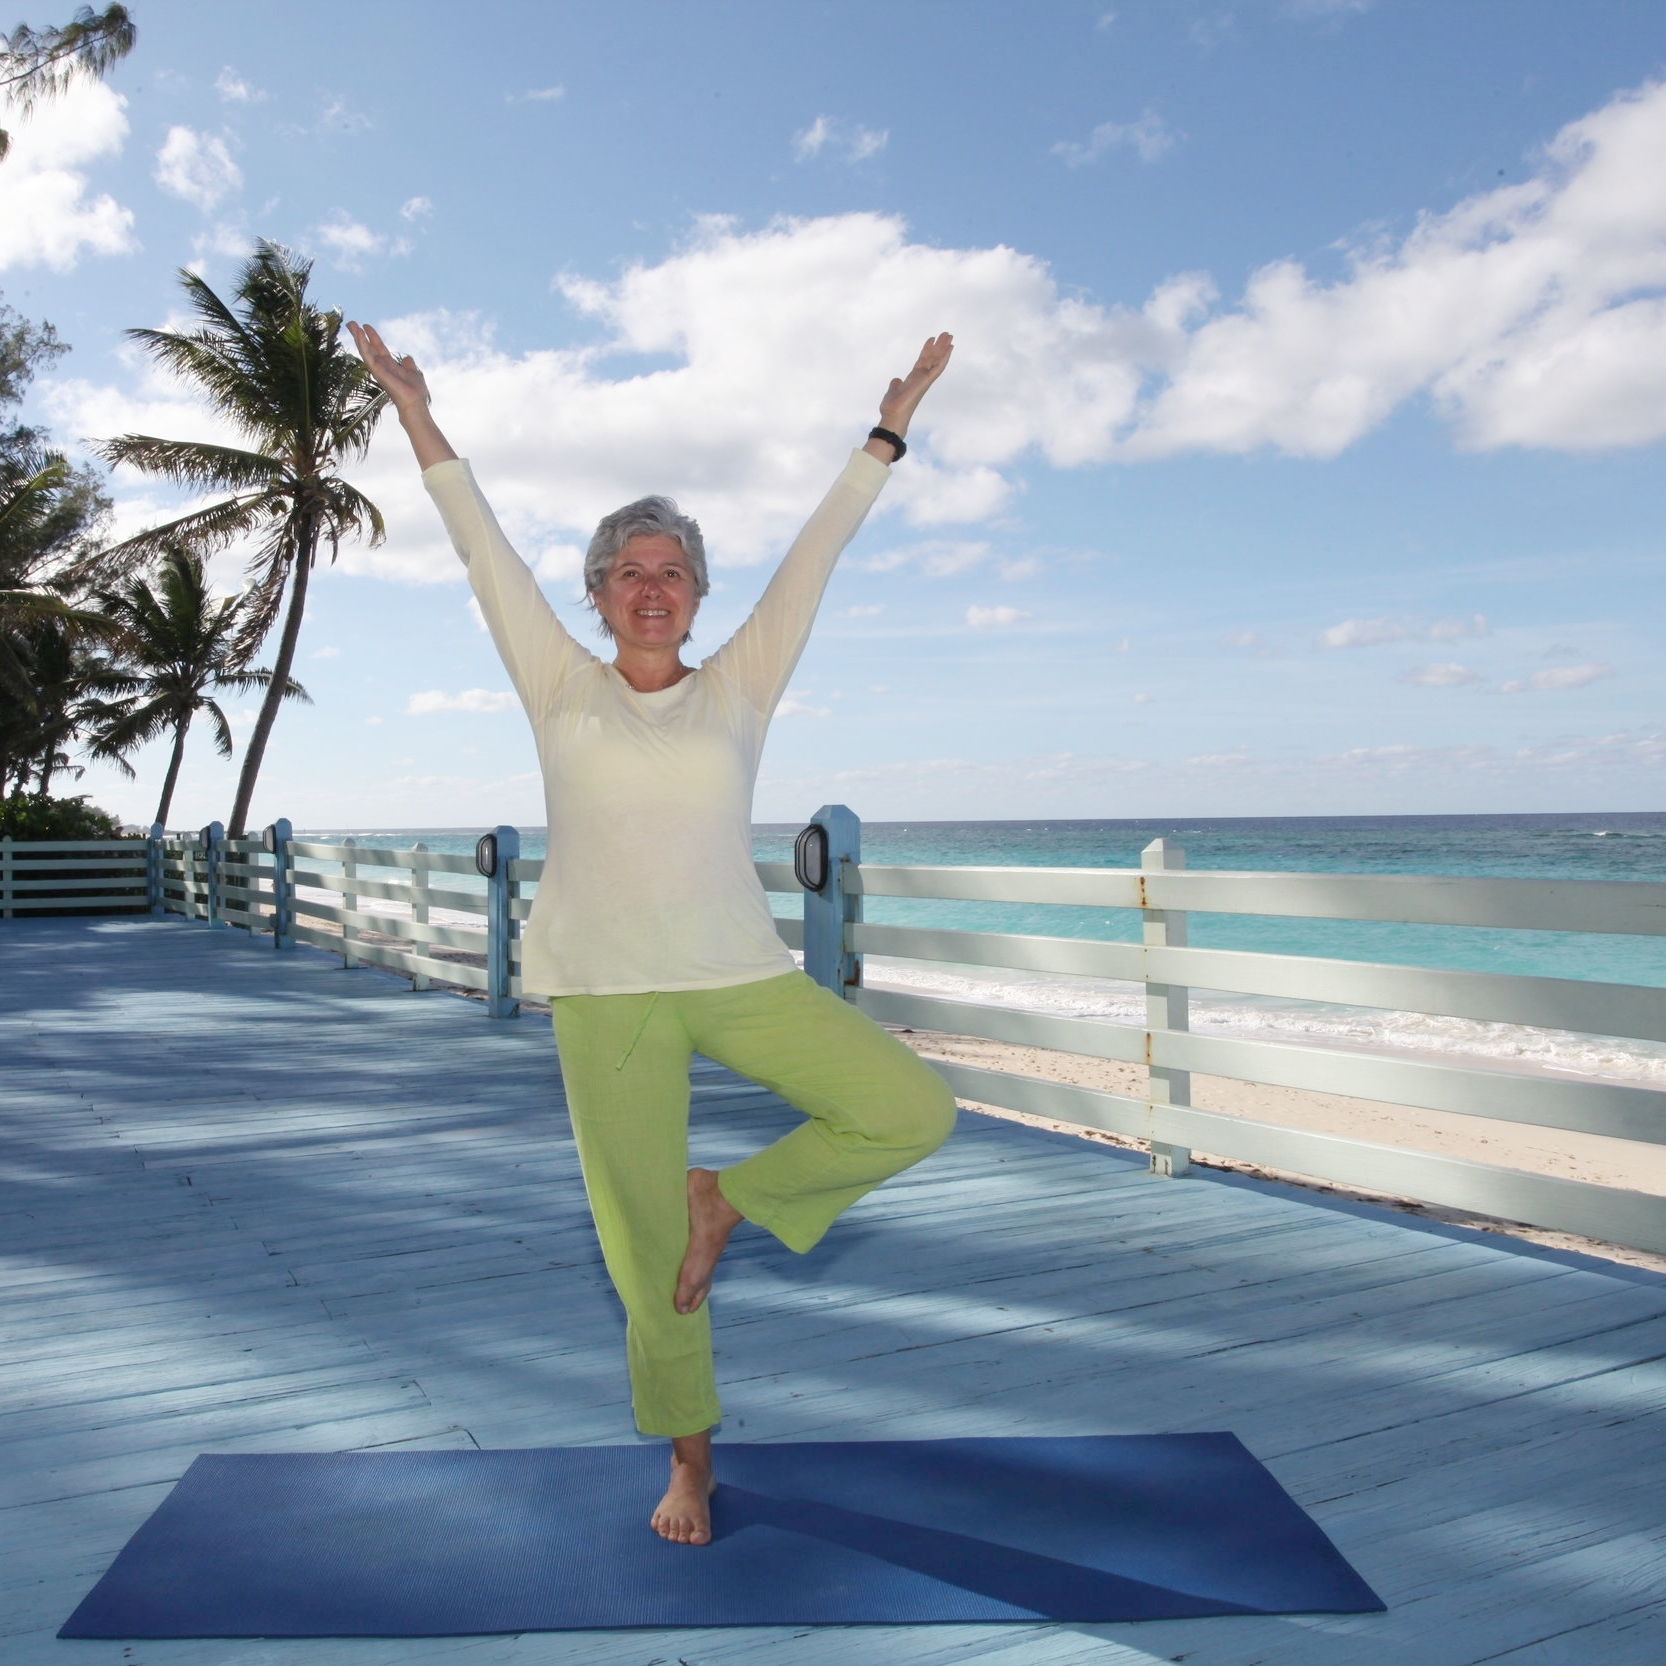 Yoga for Osteoporosis - Teacher Training -  February 18 — 22, 2017, Bahamas    This certification course is geared towards yoga teachers, physical therapists, and holistic practitioners and fitnes instructors who want to learn how to prevent osteoporosis, how to safely conduct physical programs for people with osteoporosis, and what are proper adjustments for students with physical limitations. Learn how the effects of osteoporosis can be reversed and Bone Mass Density increased through the practices of the Five Points of Yoga.